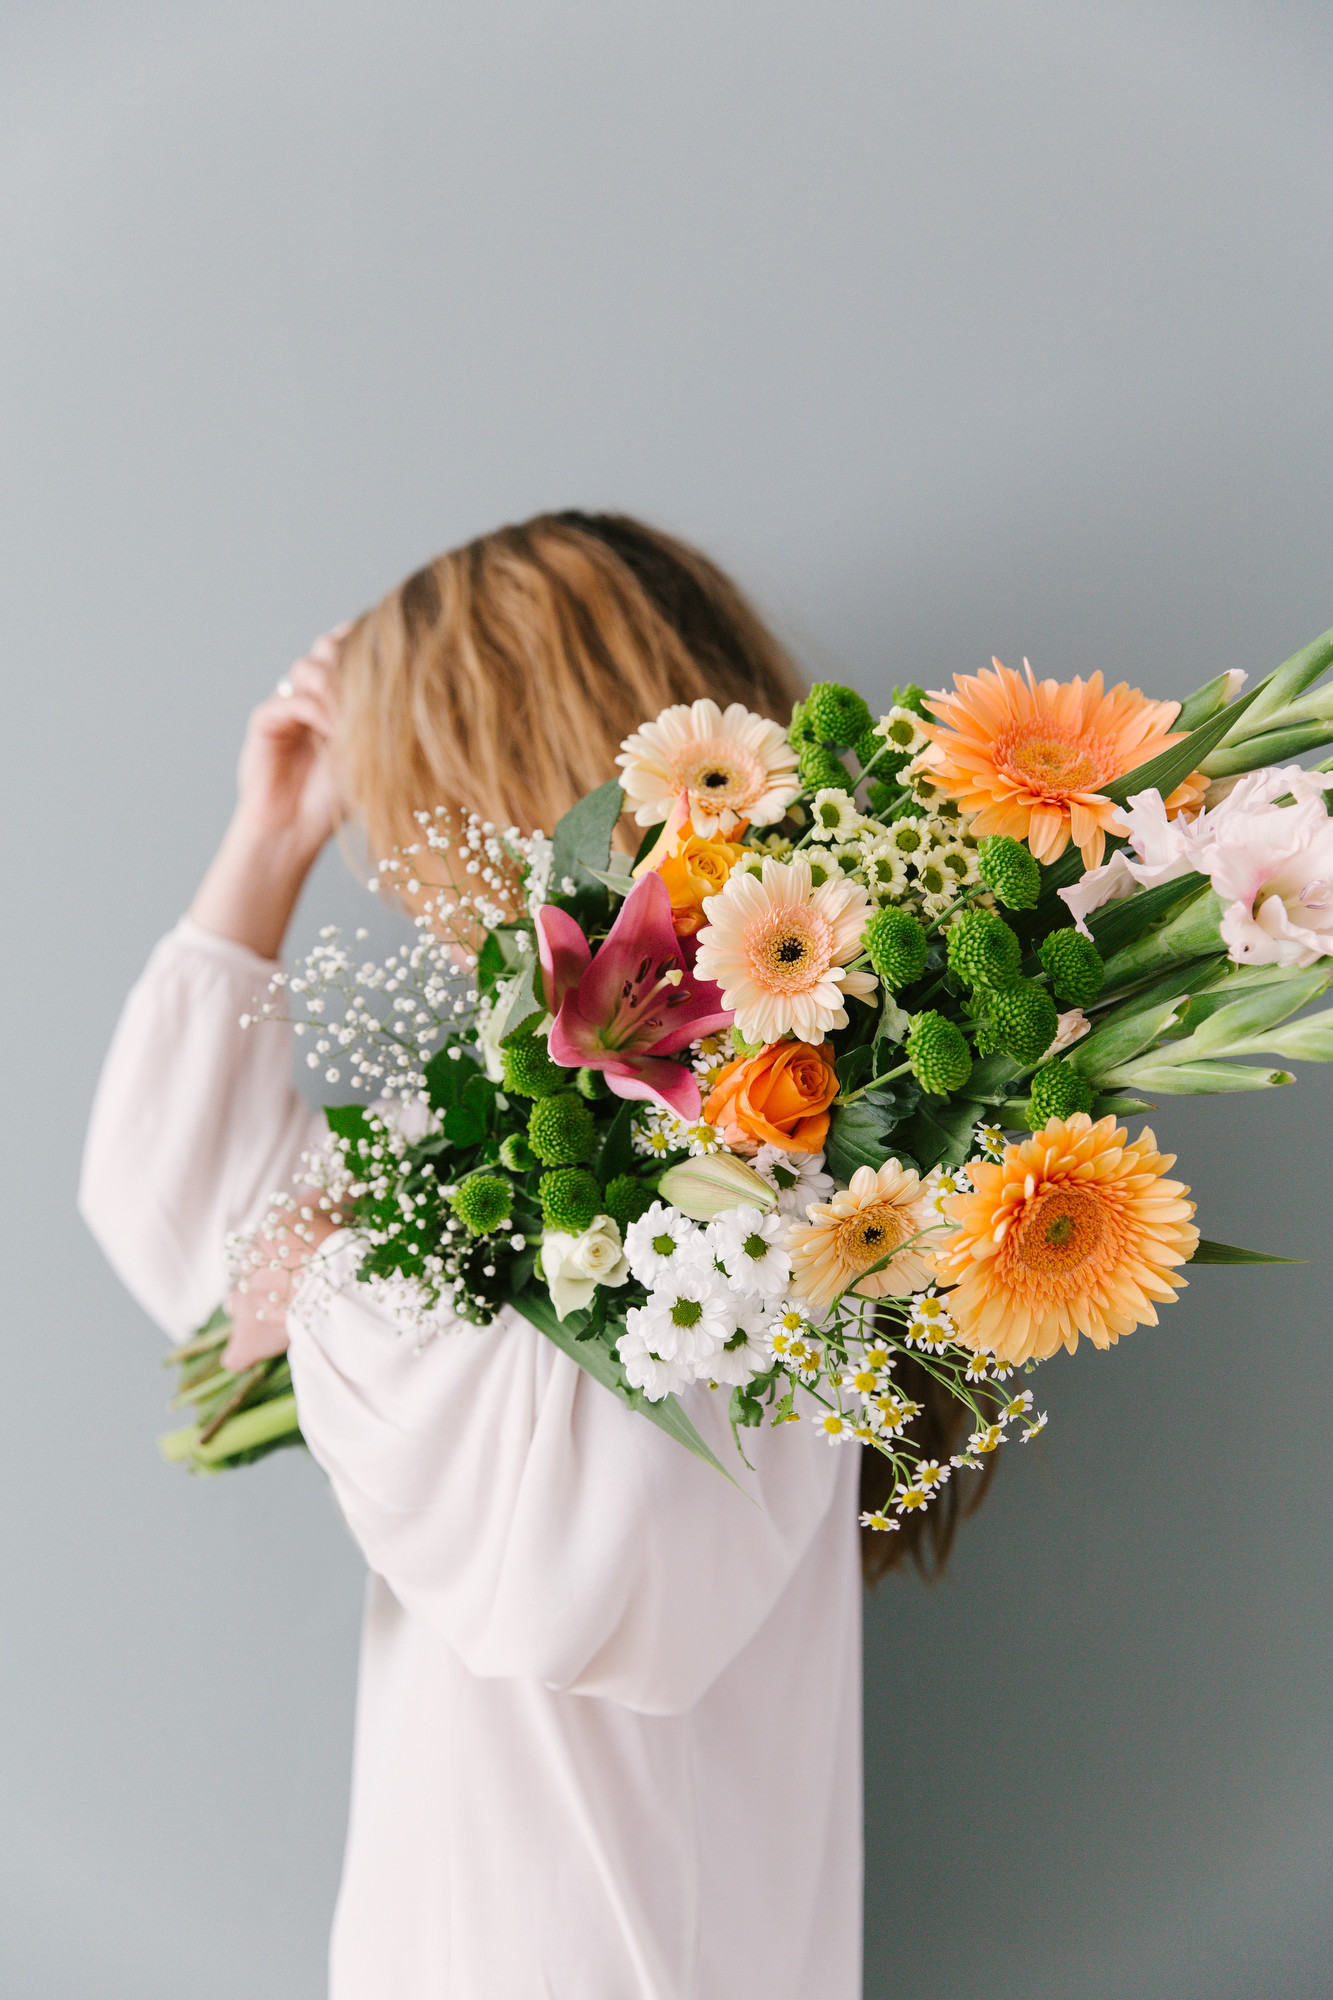 Flower bouquet | photography & styling by Joske Simmelink